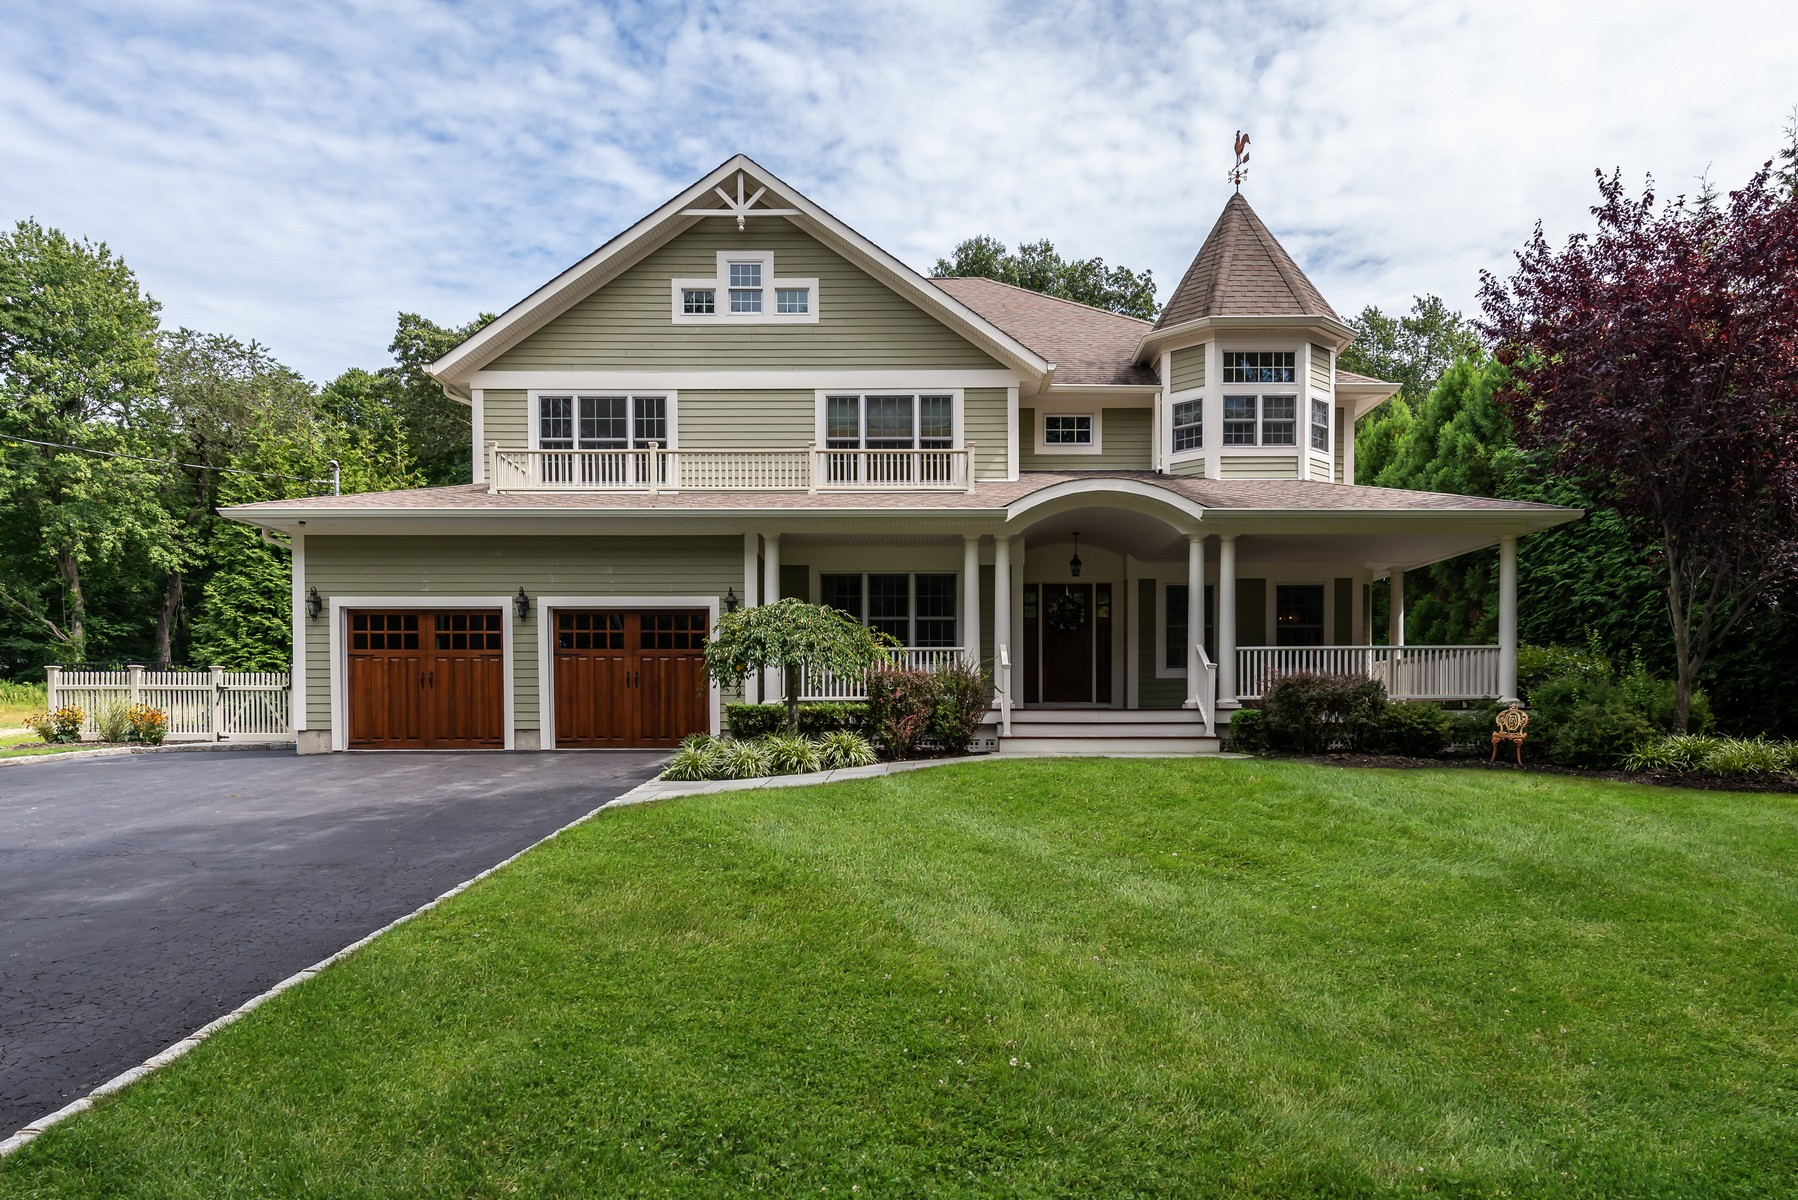 Single Family Homes for Sale at Cold Spring Hrbr 56 Hawxhurst Road Cold Spring Harbor, New York 11724 United States